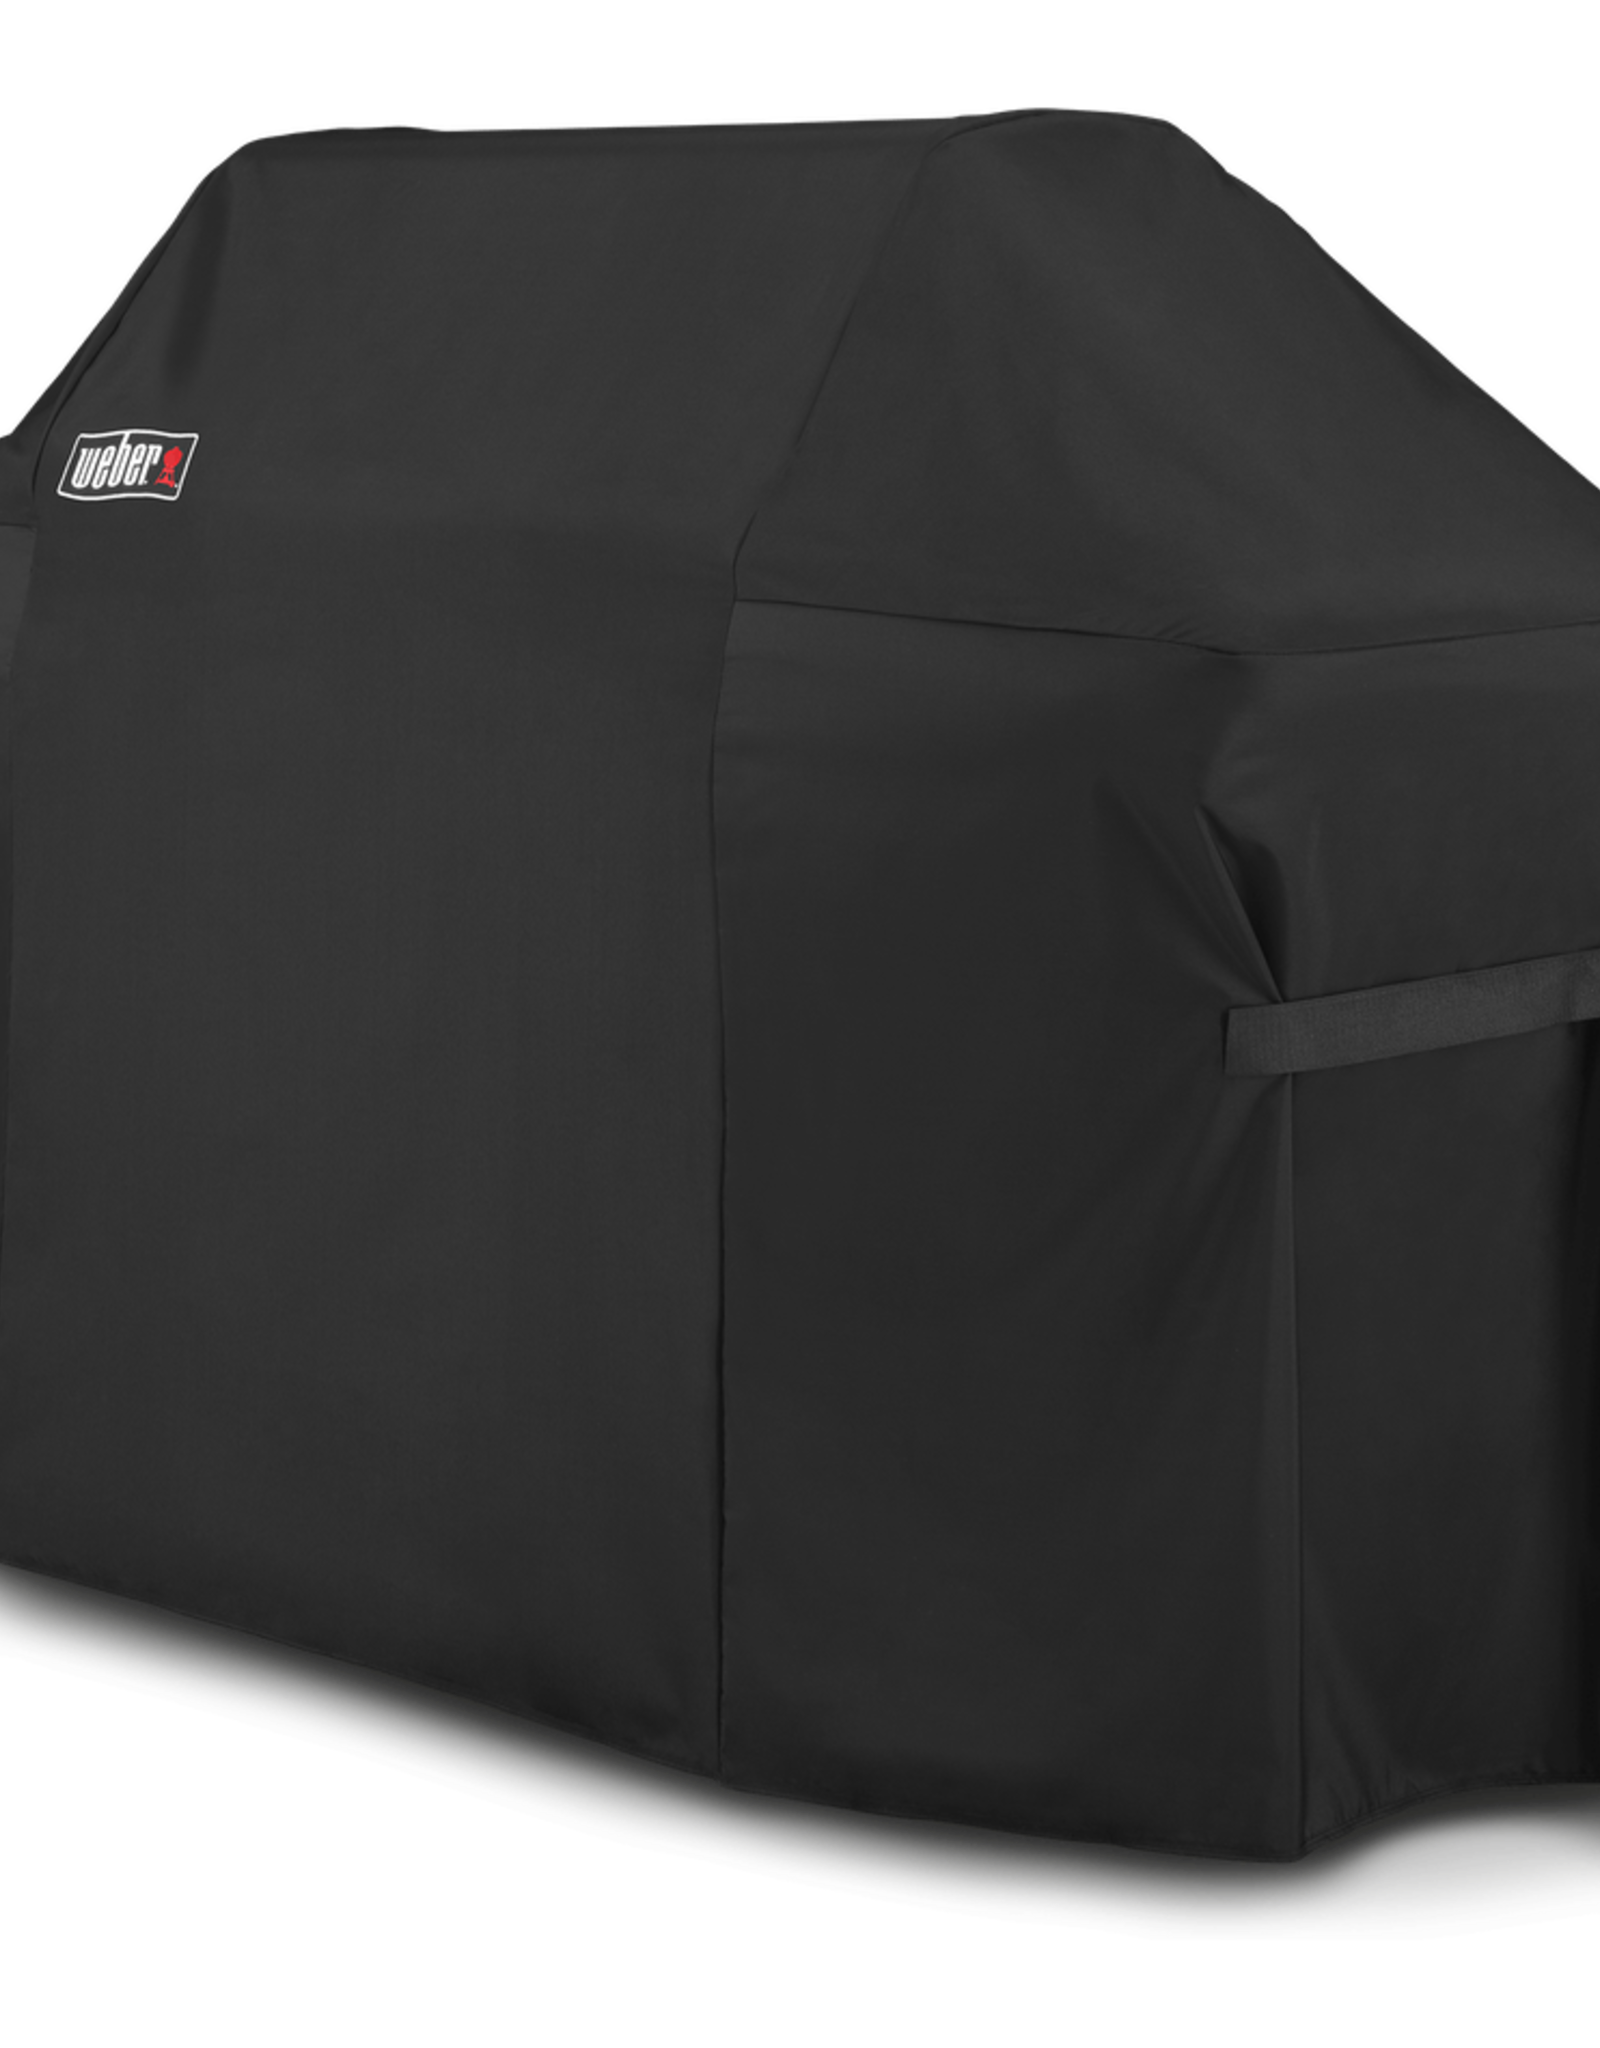 Weber Premium Grill Cover - Fits Summit® 600 series